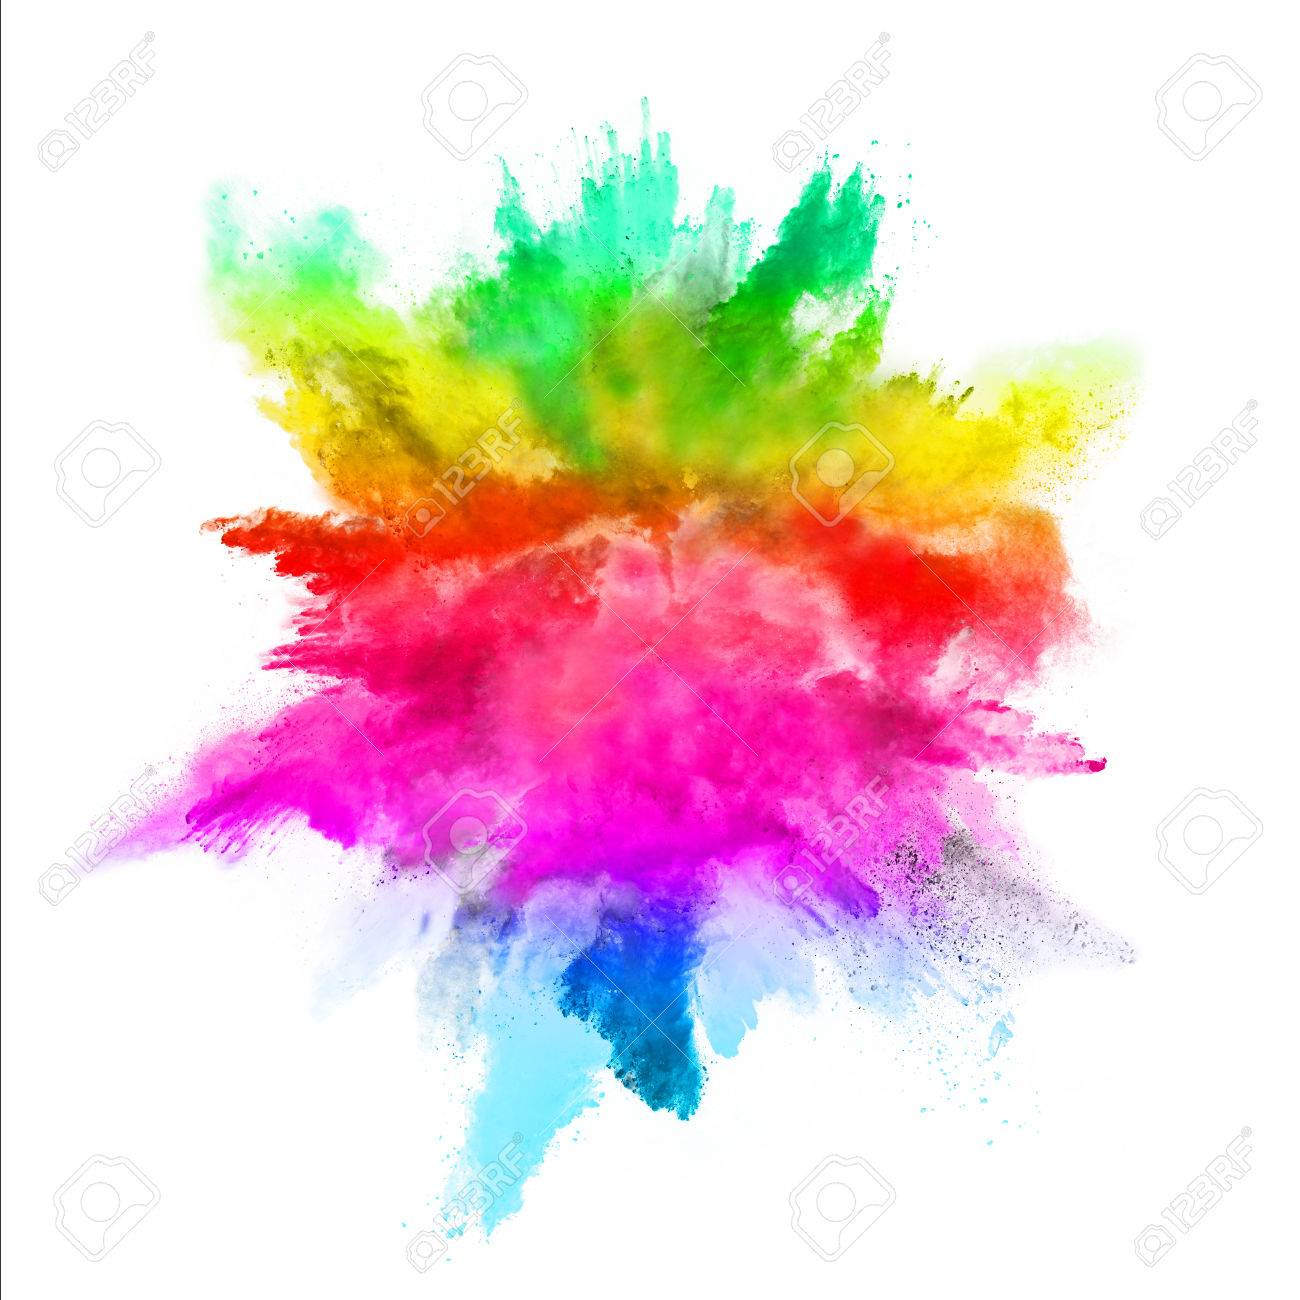 Explosion of colored powder, isolated on white background - 63790334